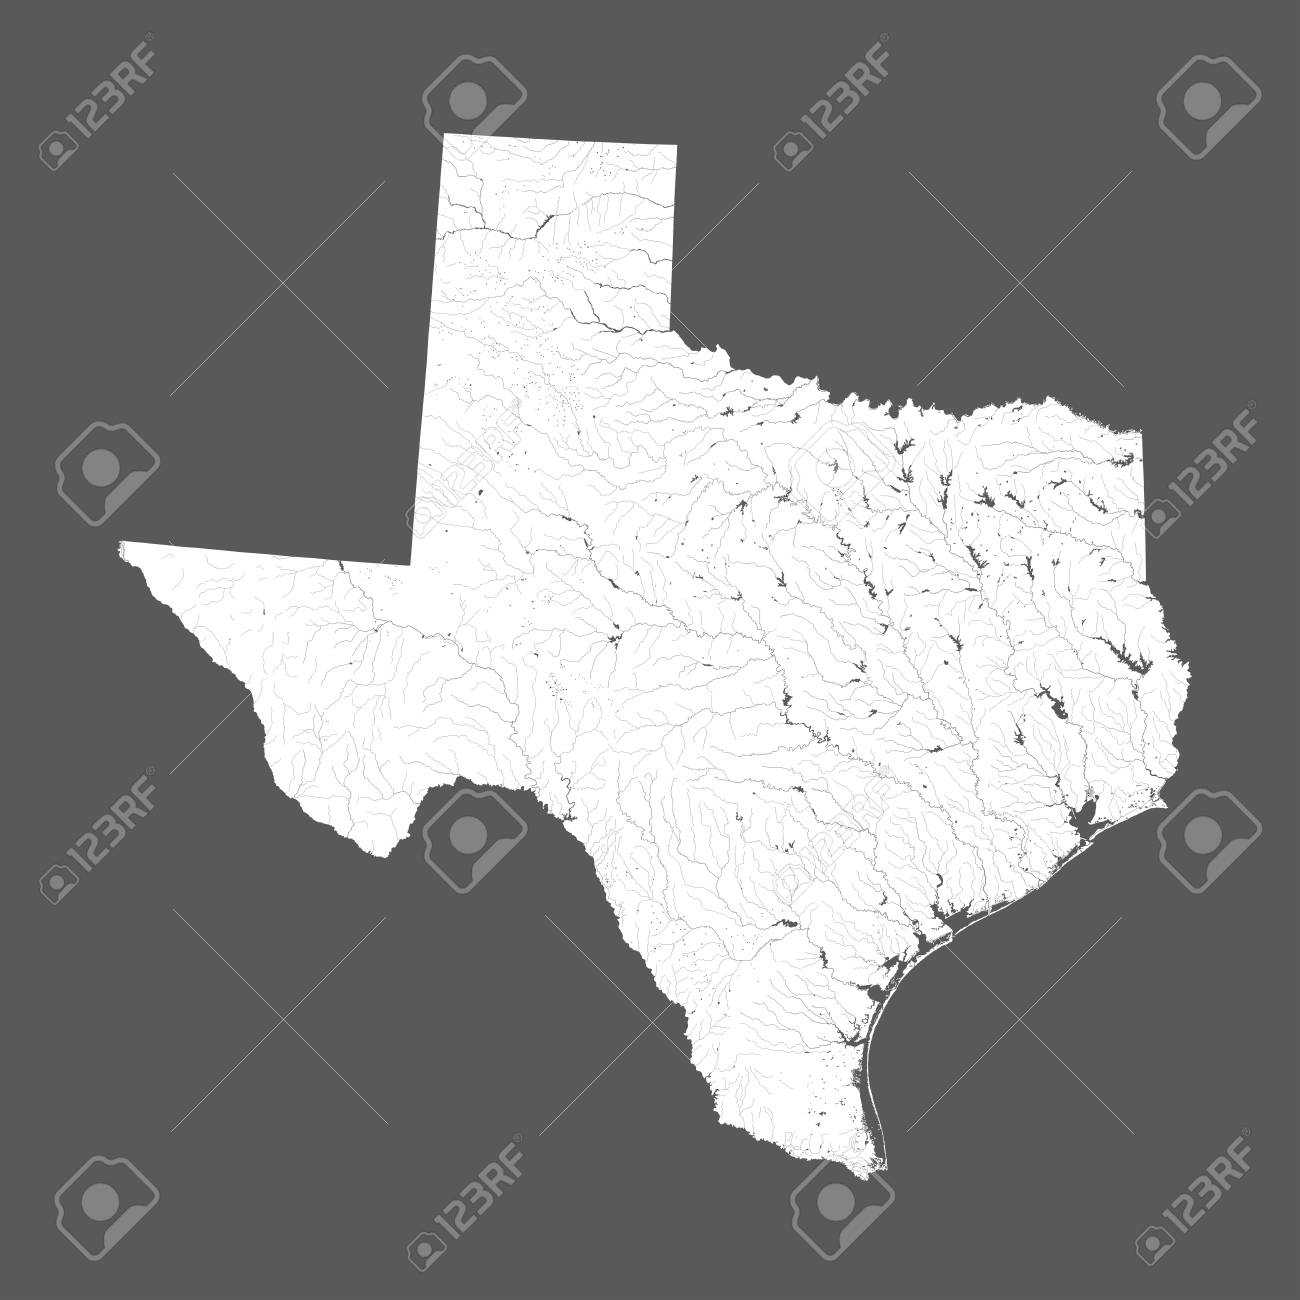 U S States Map Of Texas Hand Made Rivers And Lakes Are Shown Royalty Free Cliparts Vectors And Stock Illustration Image 103007987